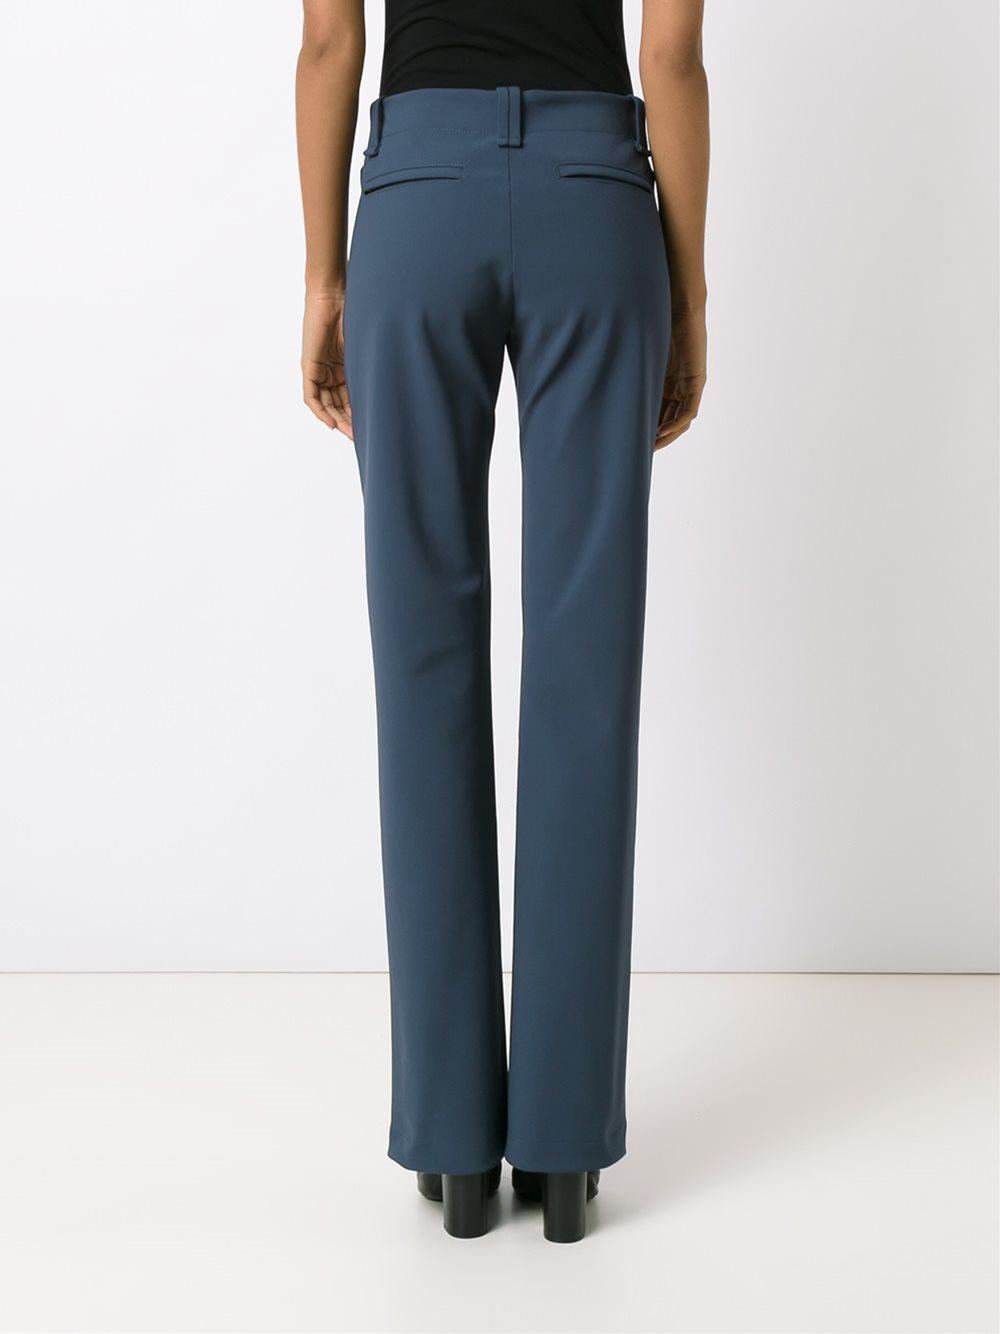 wide leg trousers - Blue Gloria Coelho GQtuW3W